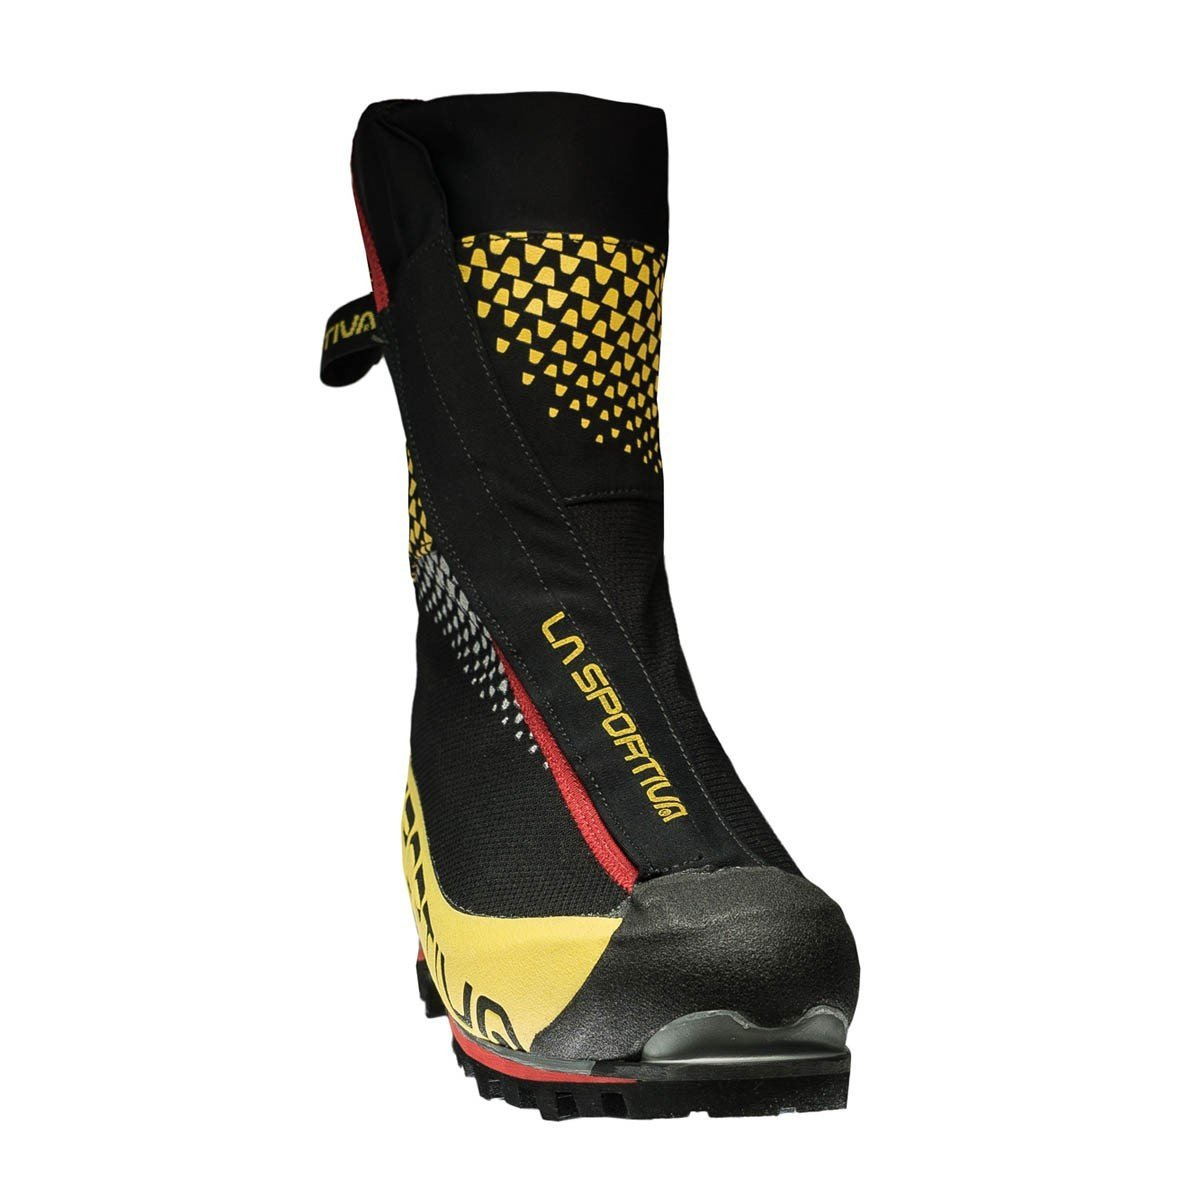 La Sportiva G5 Mountaineering Boot, front view